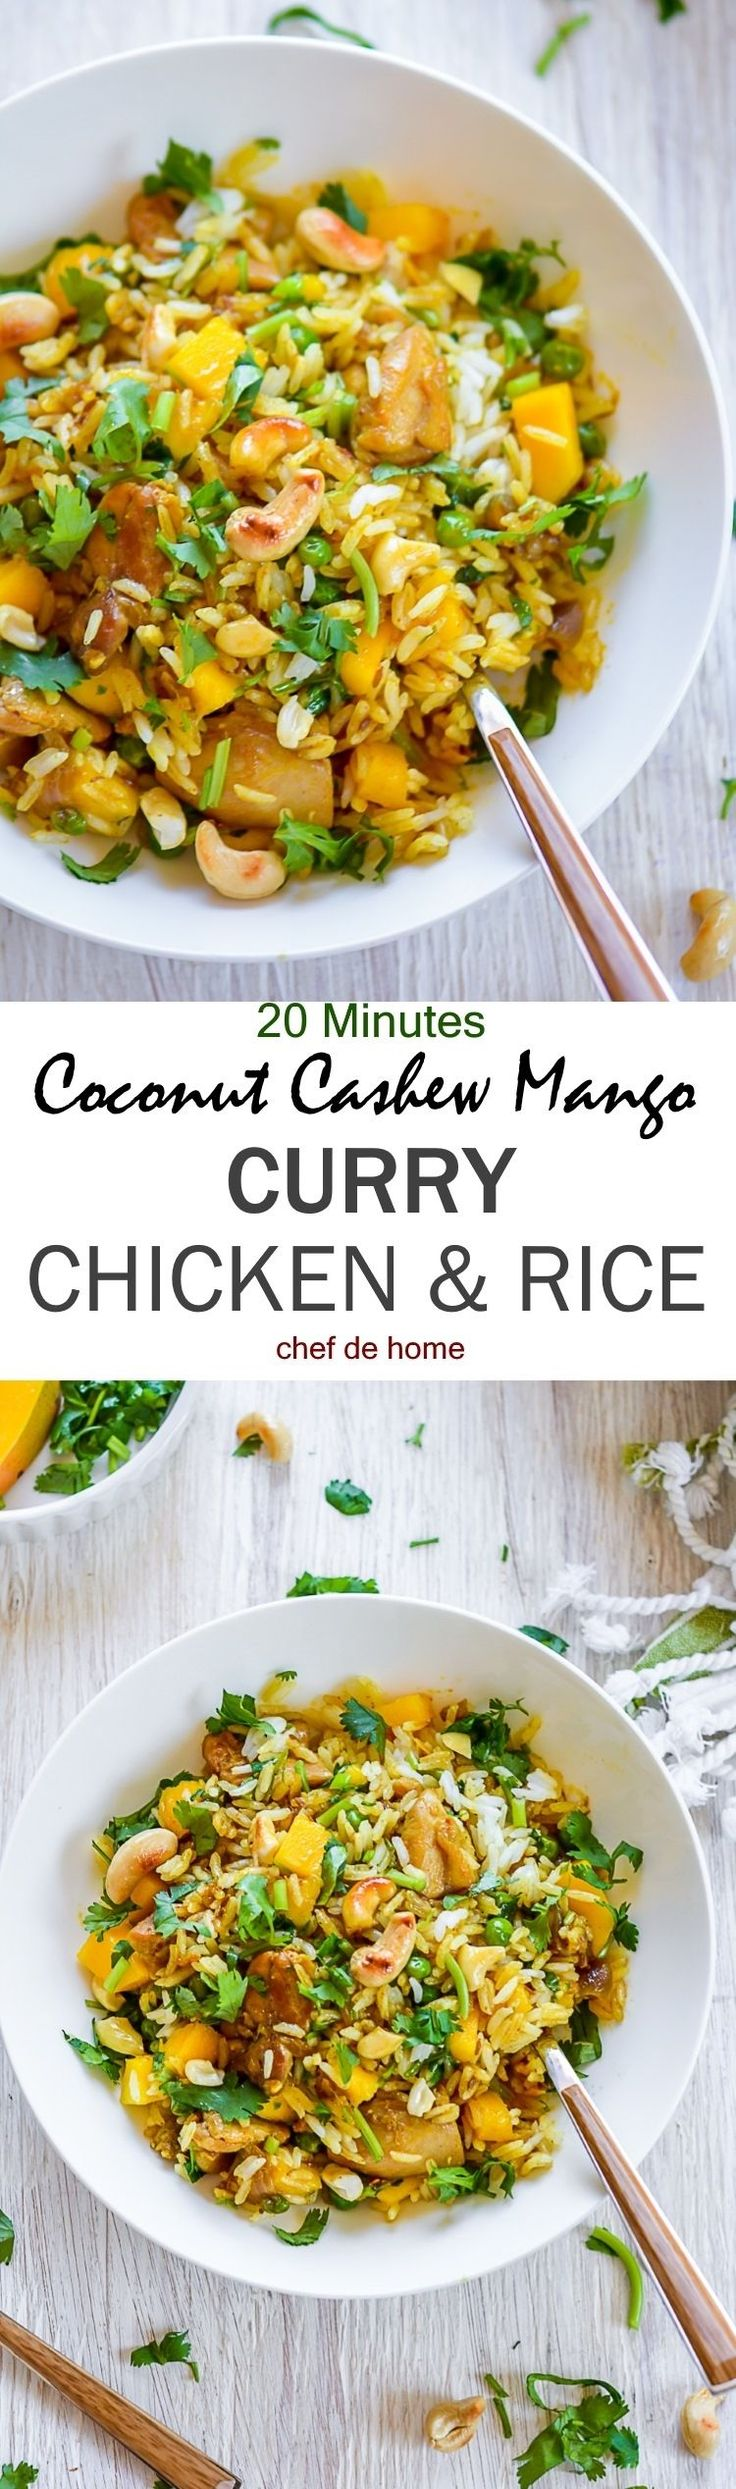 One Pot Coconut Cashew Mango Curry Chicken and Rice | chefdehome.com (Healthy Bake Salmon)